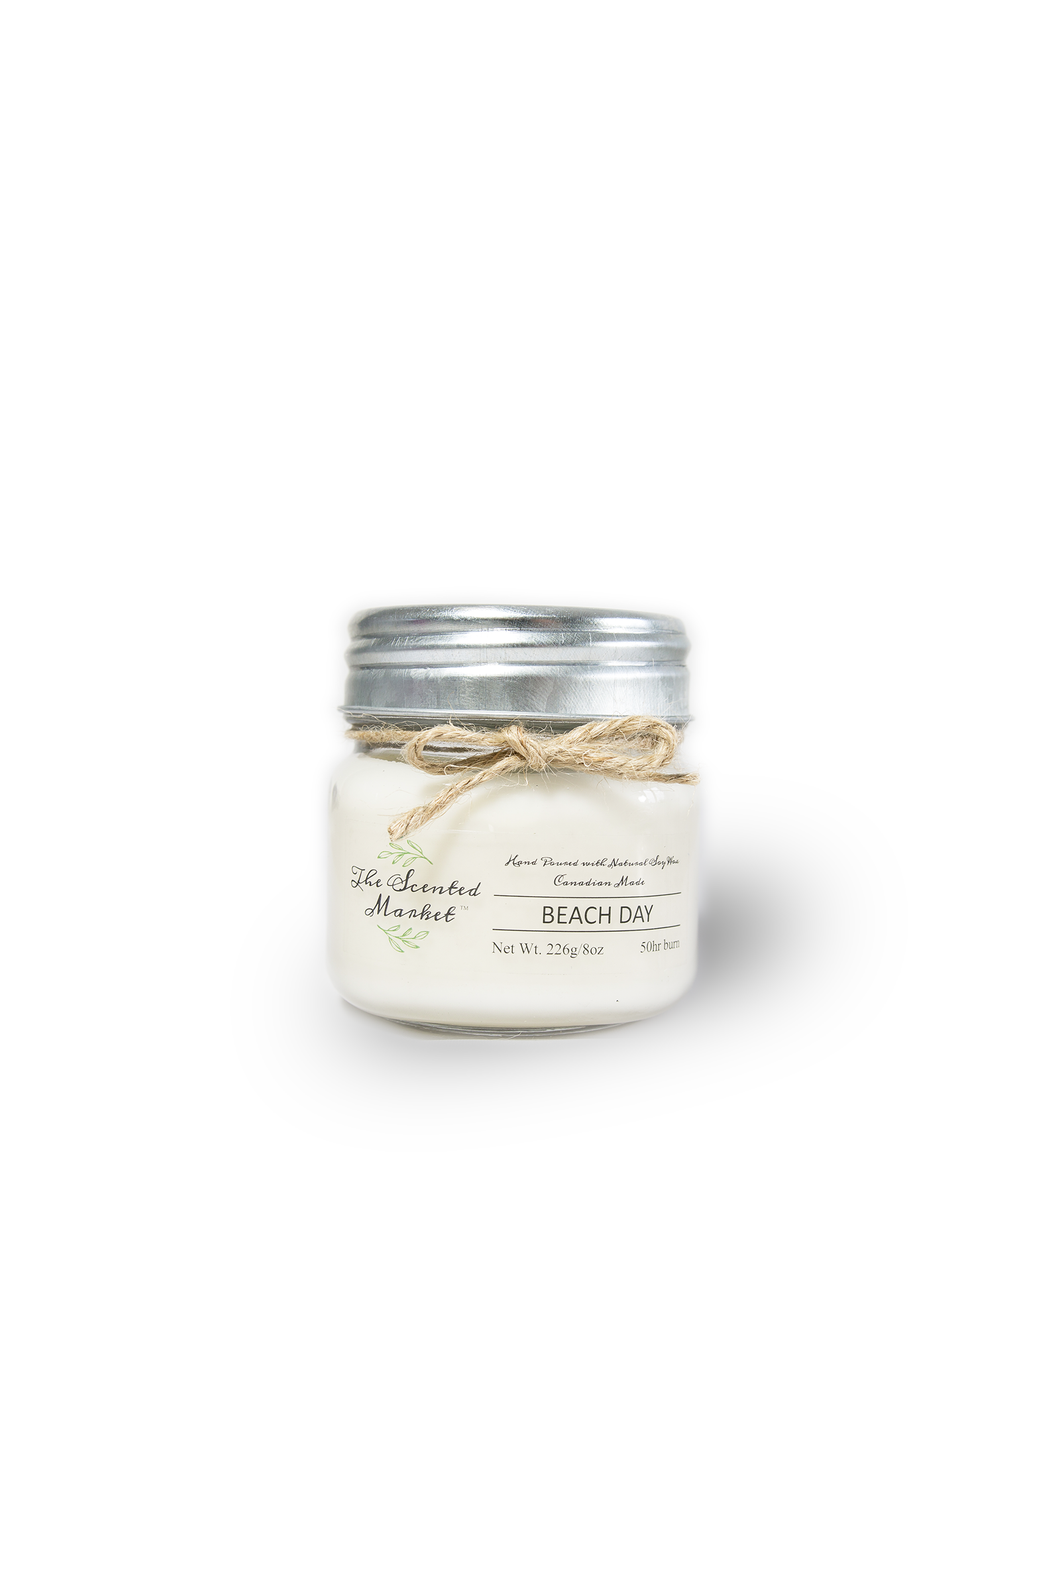 BEACH DAY SOY WAX CANDLE 8oz